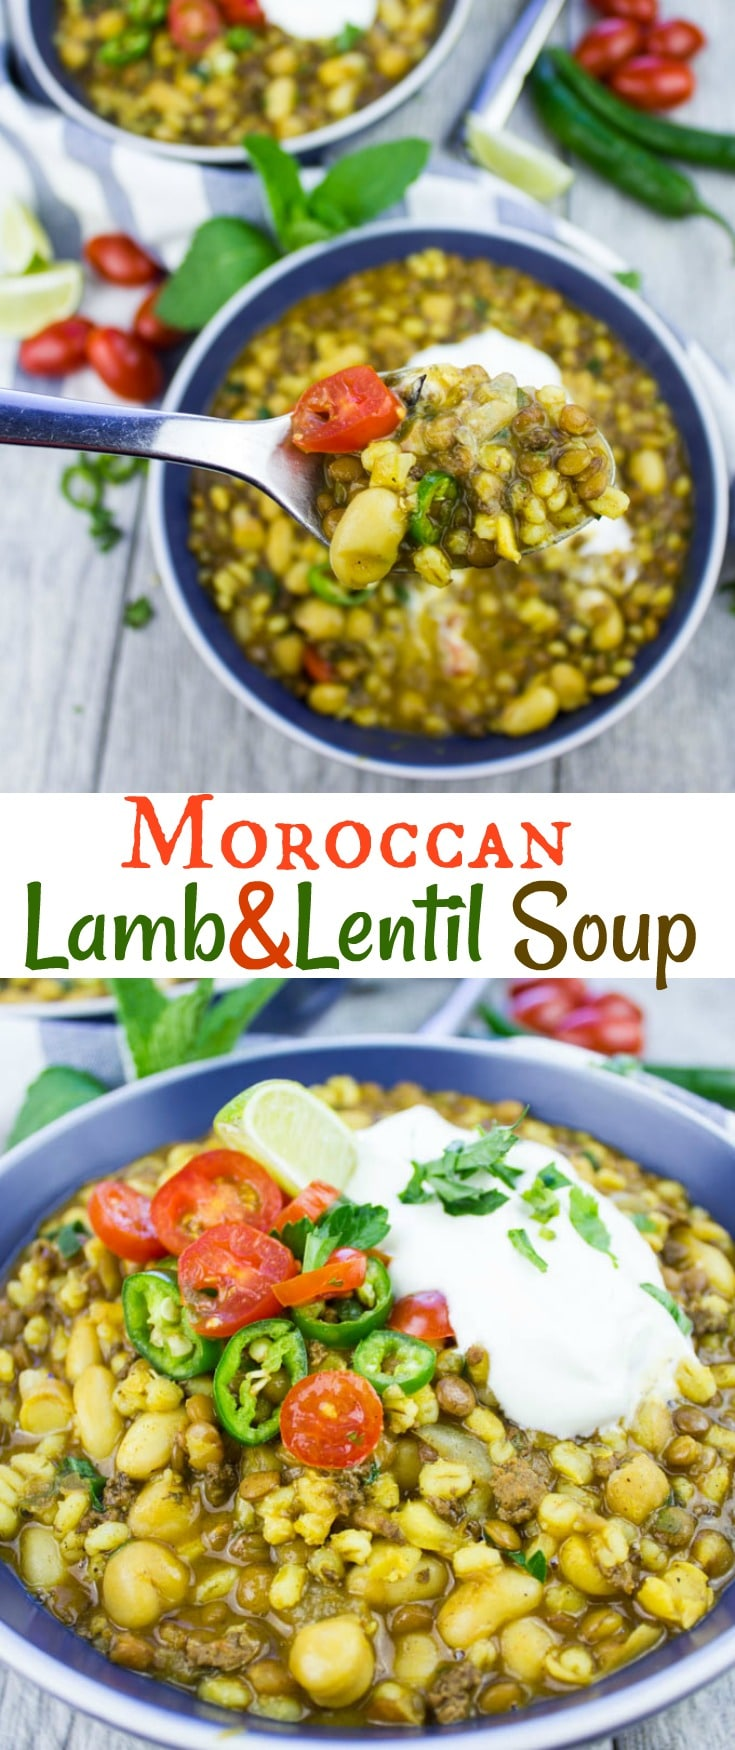 This Moroccan Lentil Soup with turmeric and lamb is comfort in a bowl. And while it's categorized as a soup, it's a full meal on its own. Ground lamb, healthy lentils and healing turmeric - a nutritious comfort food soup made in an instant pot in 30 minutes #lentilsoup, #groundlambrecipes, #instantpotrecipes, #pressurecooking, #Moroccanrecipes